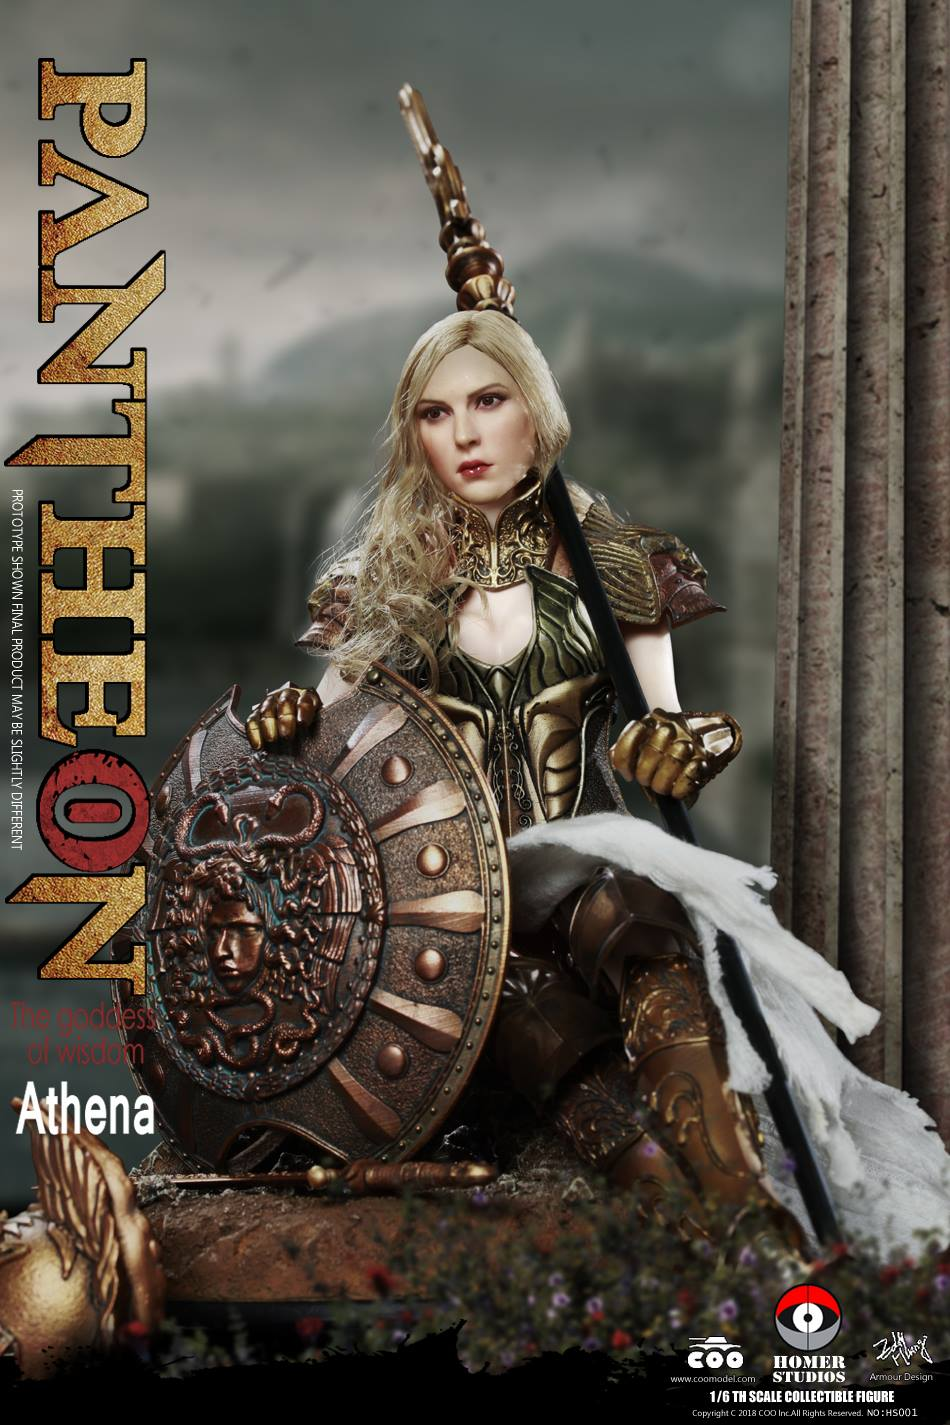 "NEW PRODUCT: COO MODEL X HOMER 1/6th scale PANTHEON Athena Goddess of War 12"" Collectible Figure 765"